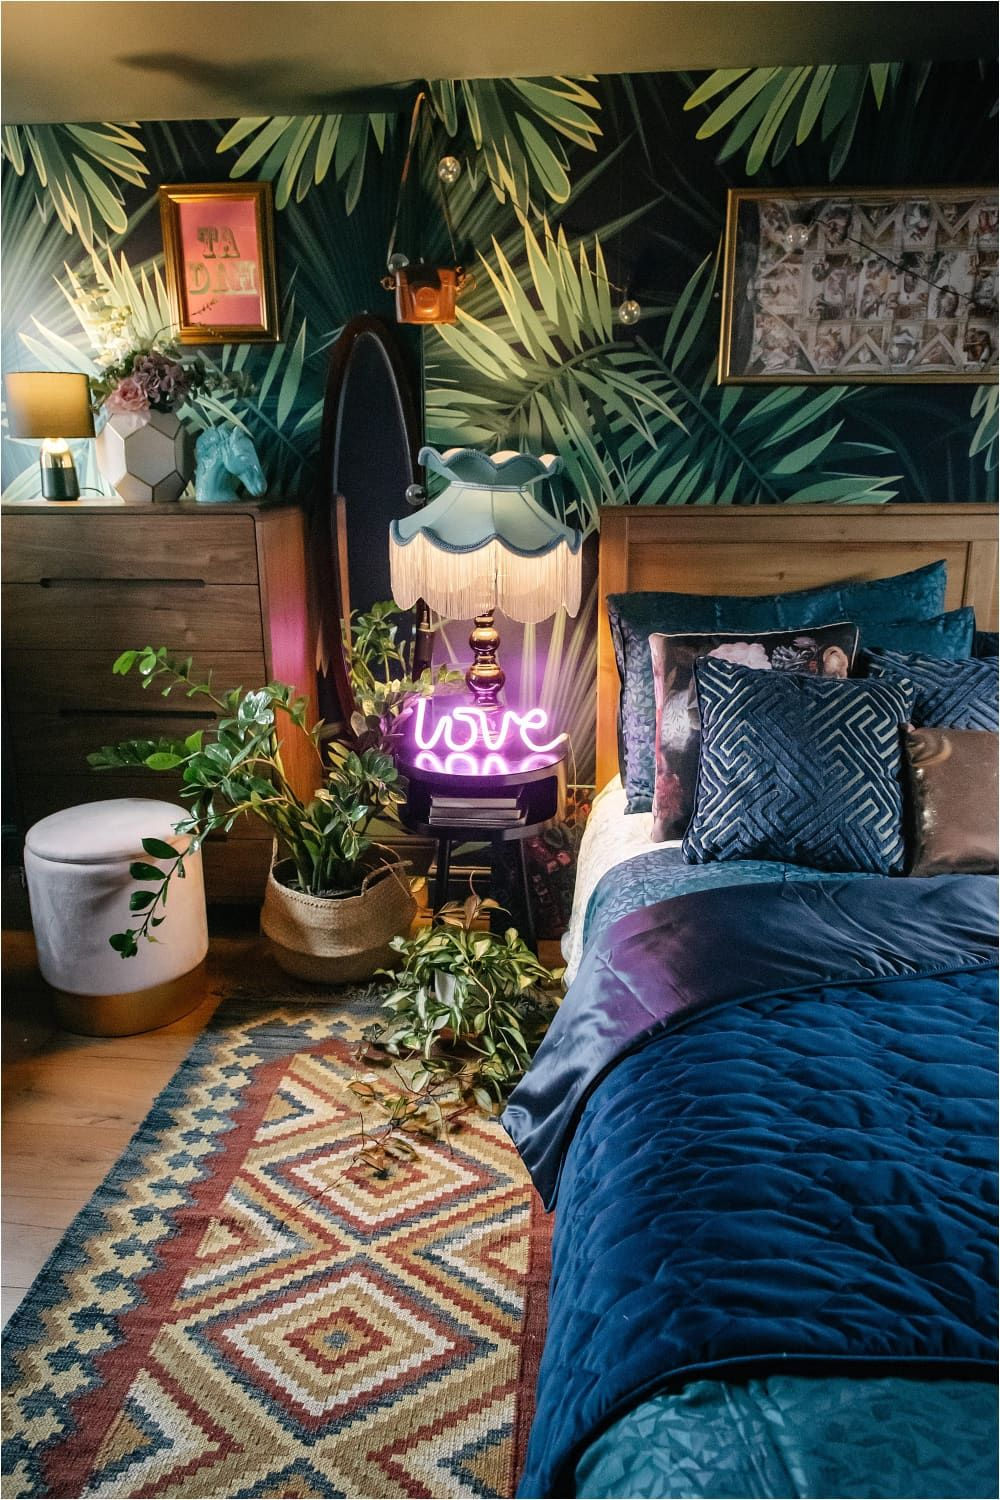 Every Room Of This London House Is An Explosion Of Envy Inducing Color And Pattern In 2020 London House Boho Chic Living Room Apartment Room